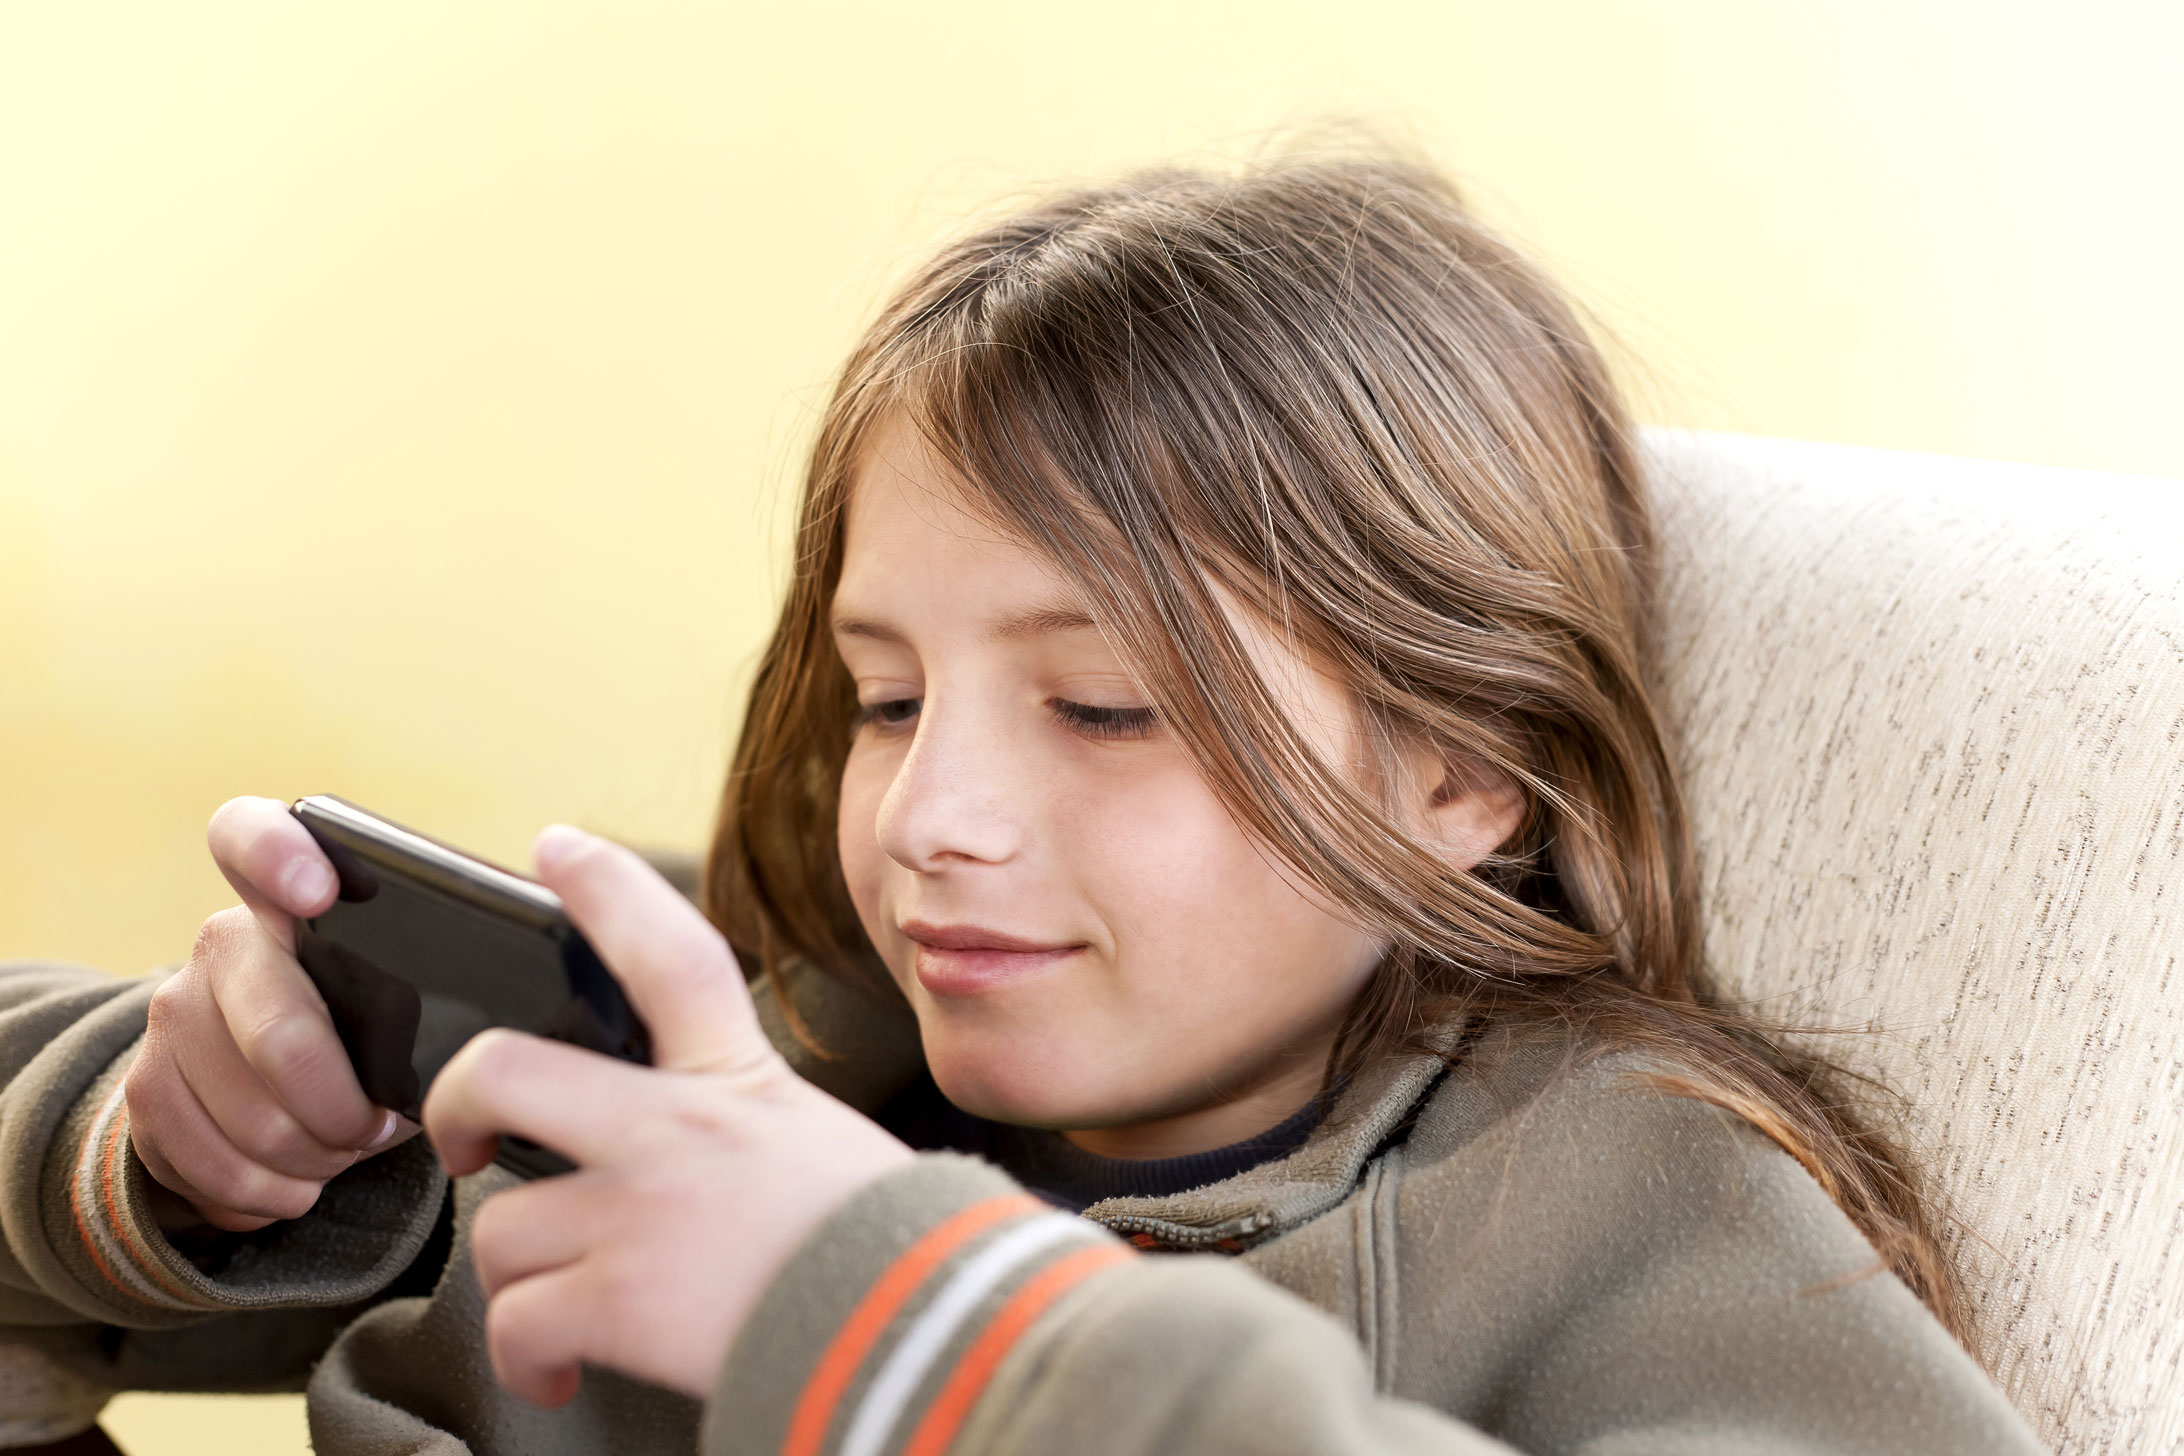 The Average Age For A Child Getting Their First Smartphone Is Now 10 3 Years Techcrunch